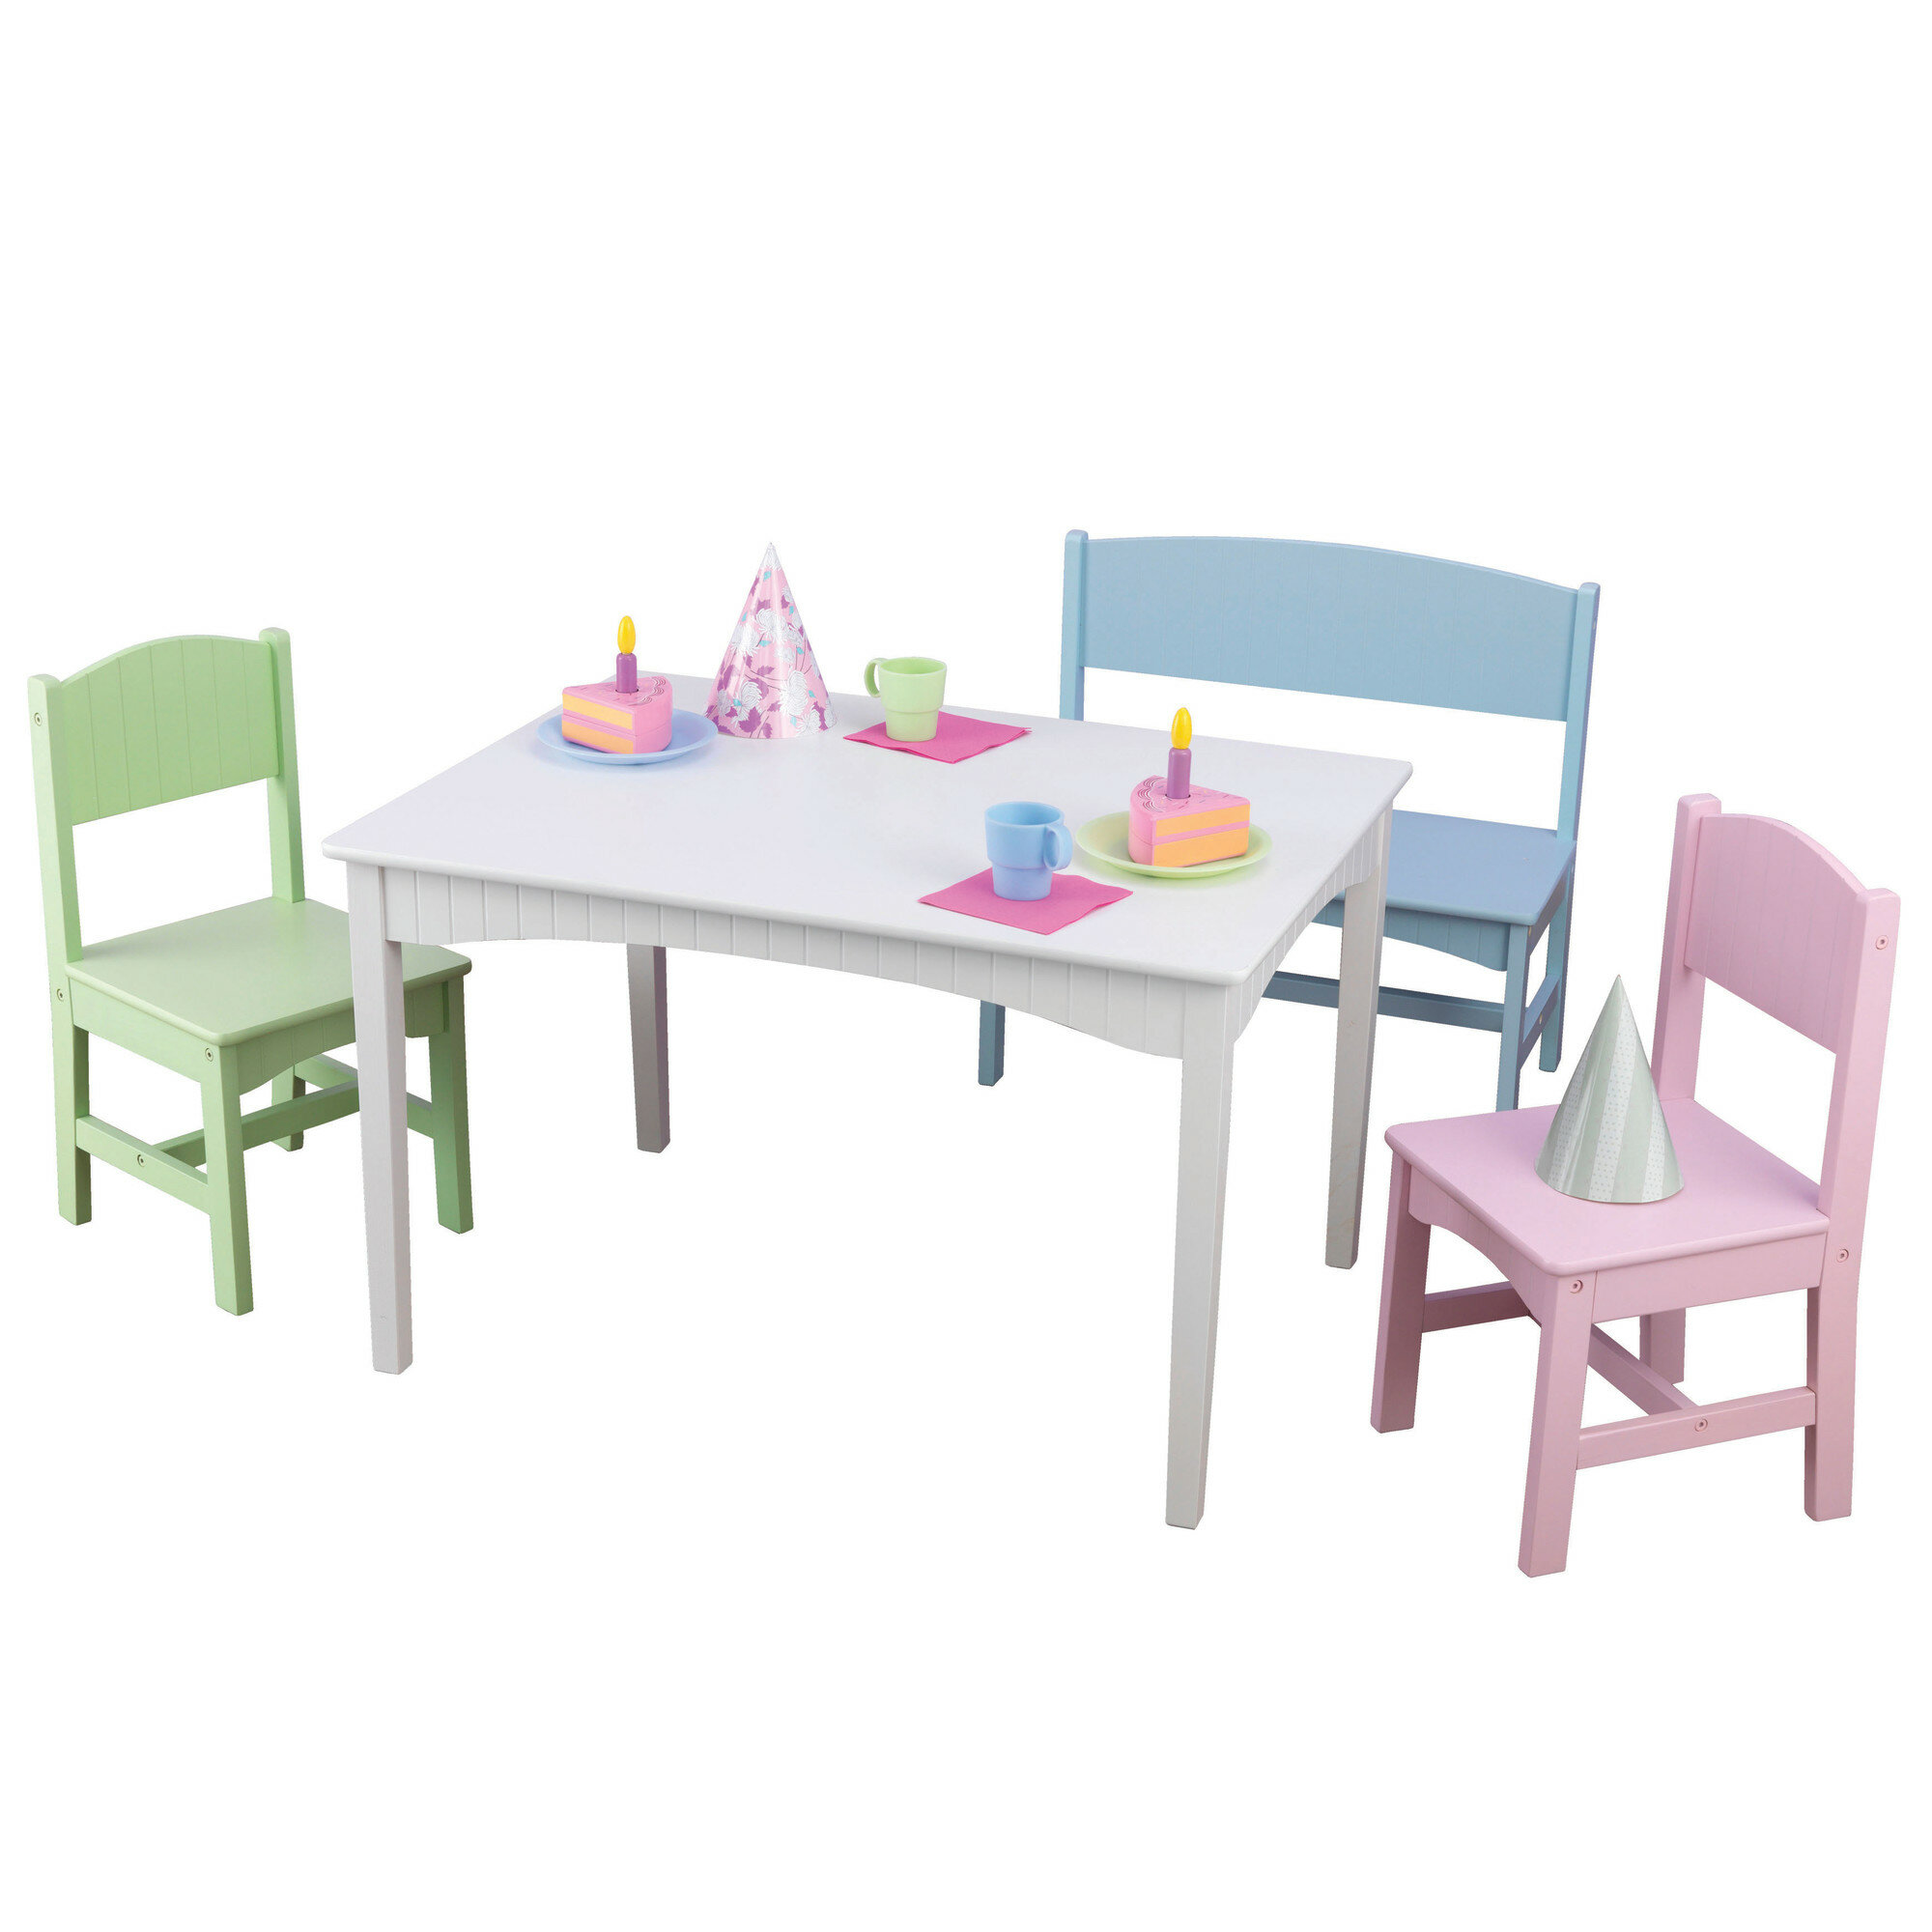 Enjoyable Nantucket Kids 4 Piece Writing Table And Chair Set Short Links Chair Design For Home Short Linksinfo